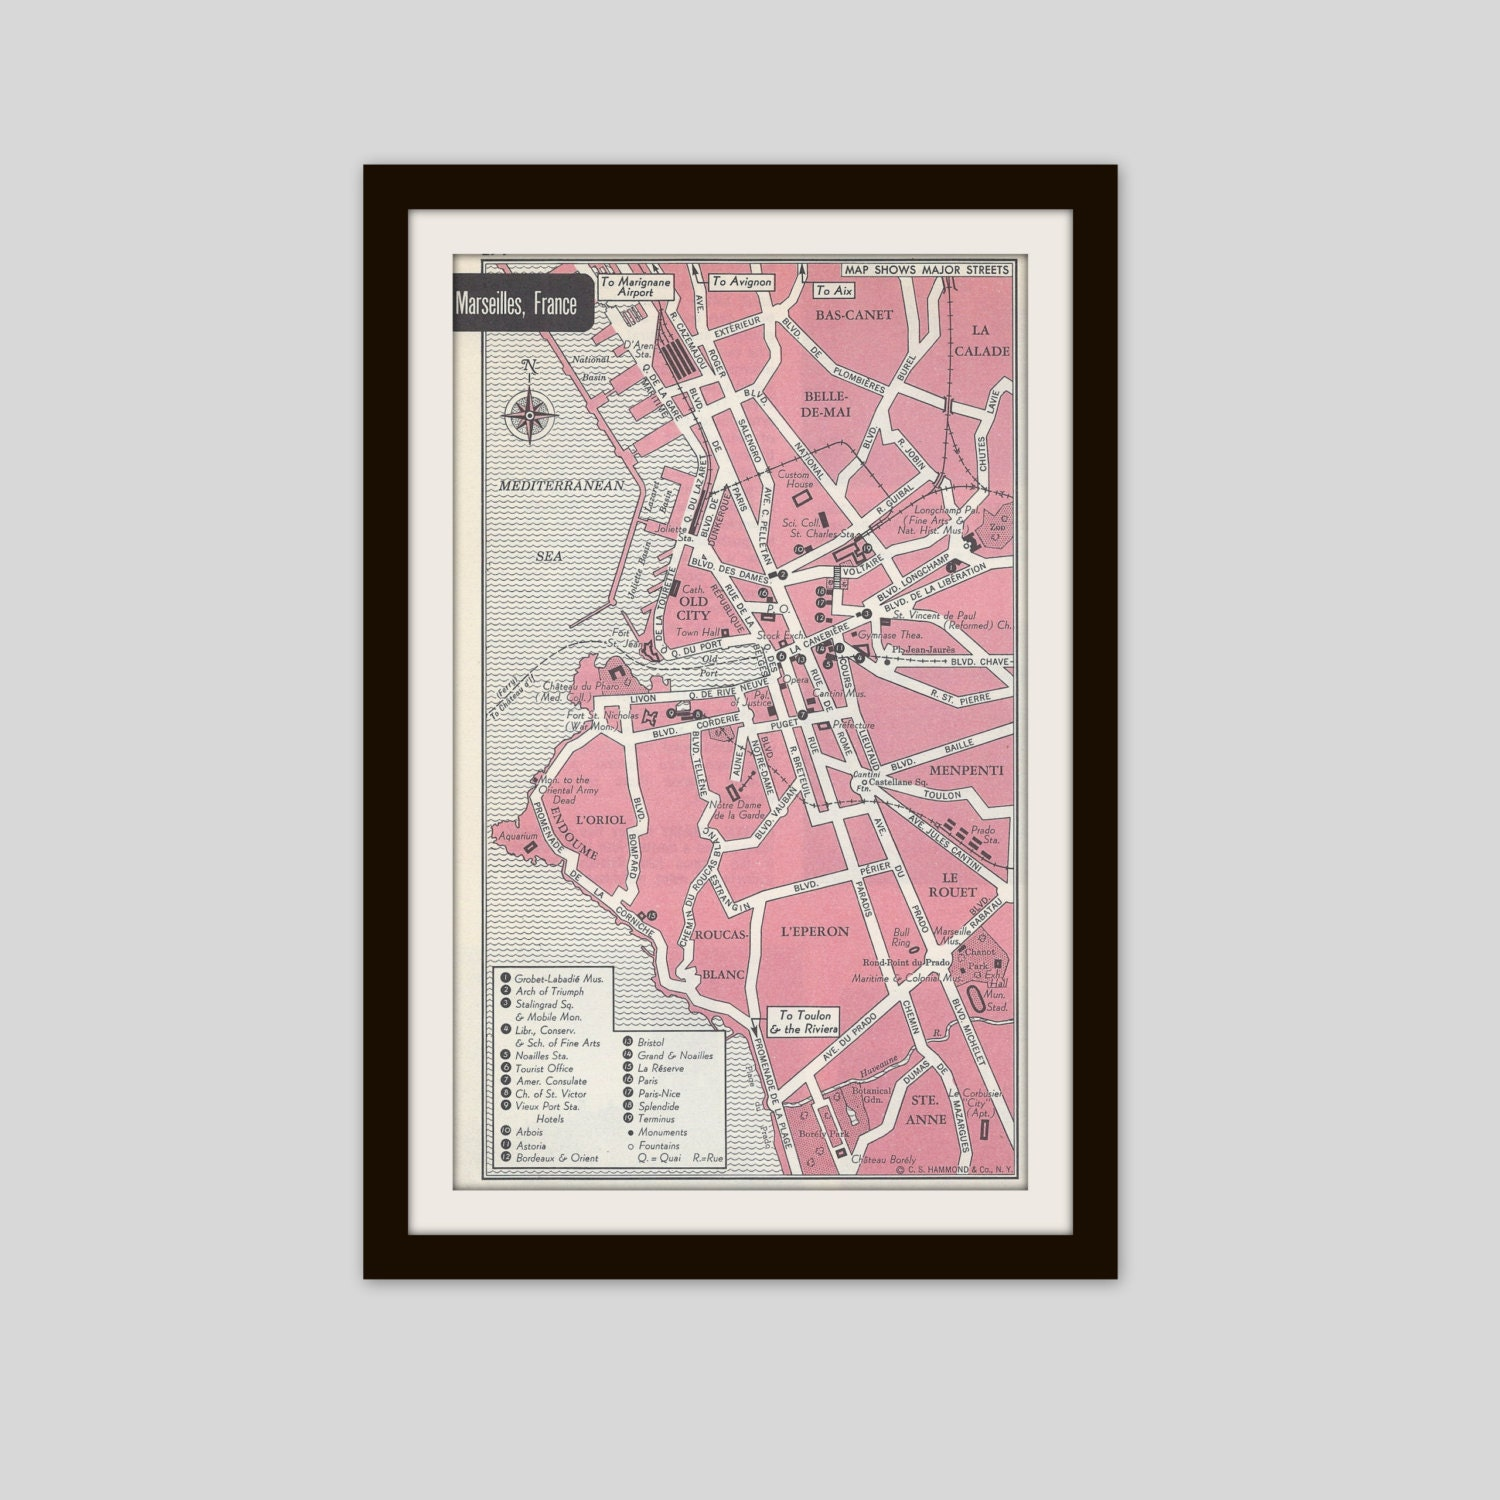 Apt France Map.Marseilles France Map City Map Street Map 1950s Pink Etsy